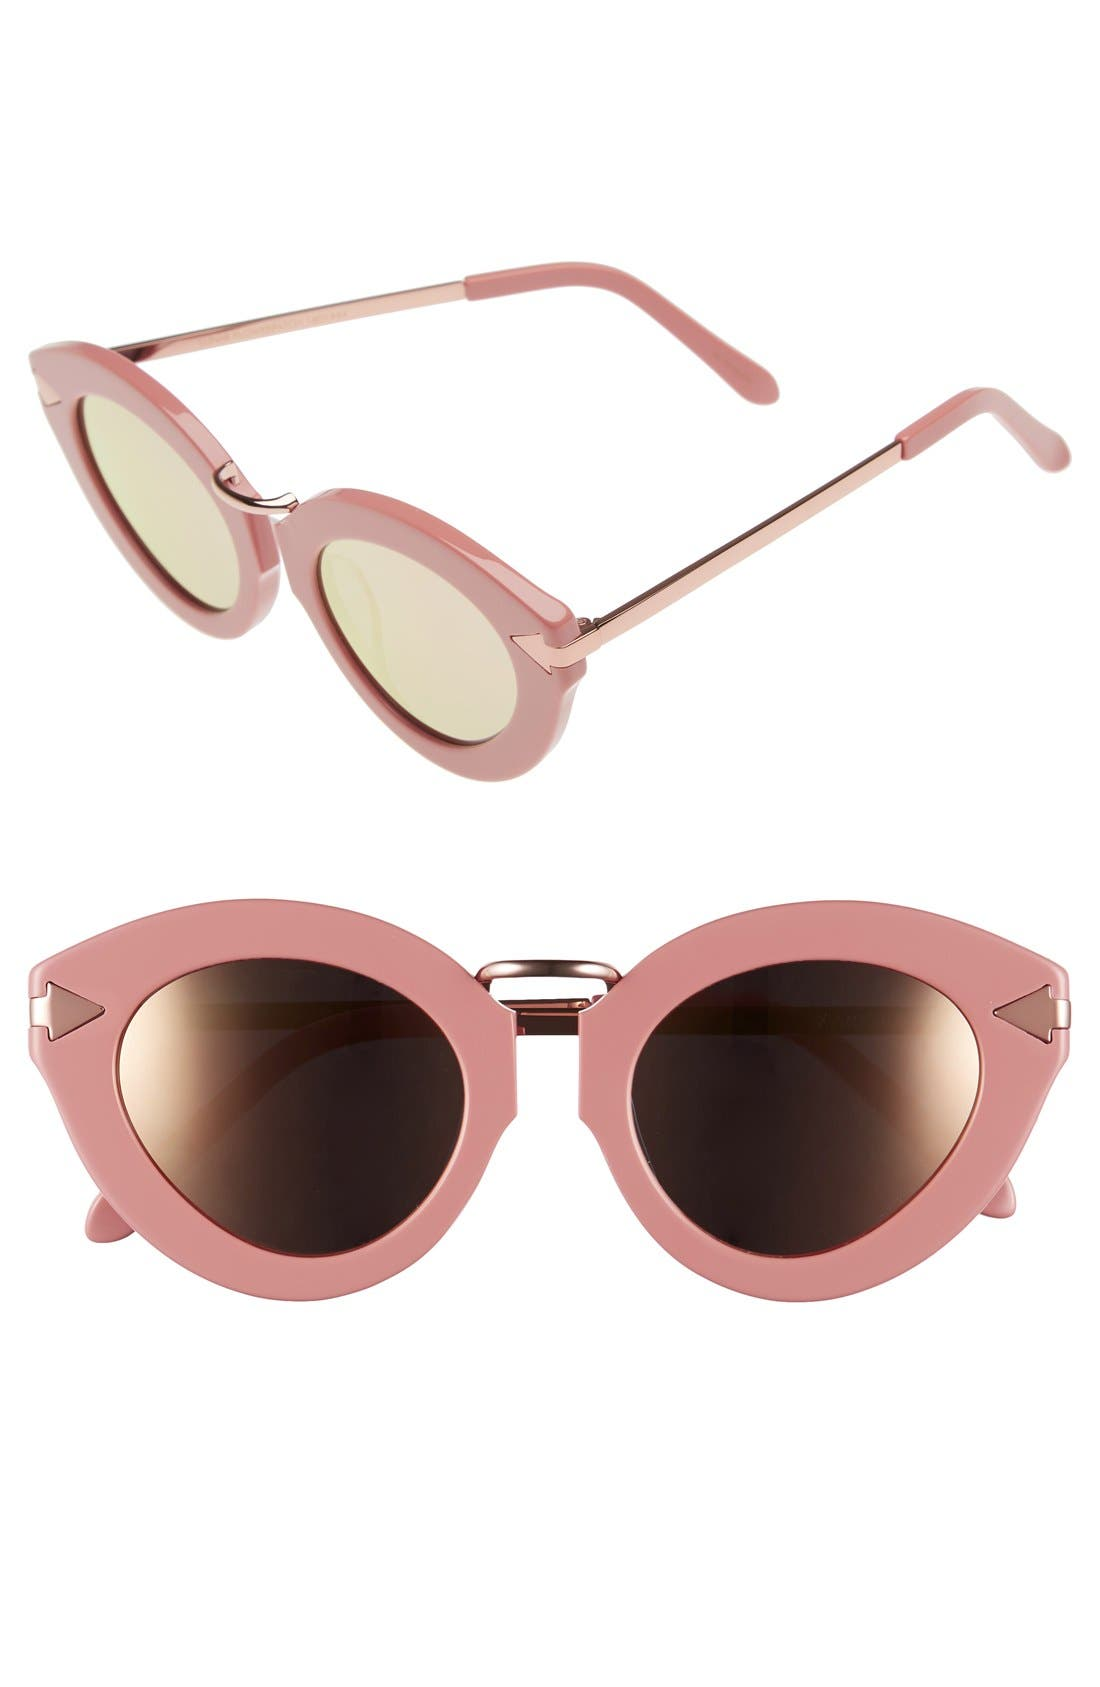 Alternate Image 1 Selected - Karen Walker 'Lunar Flowerpatch' 49mm Sunglasses